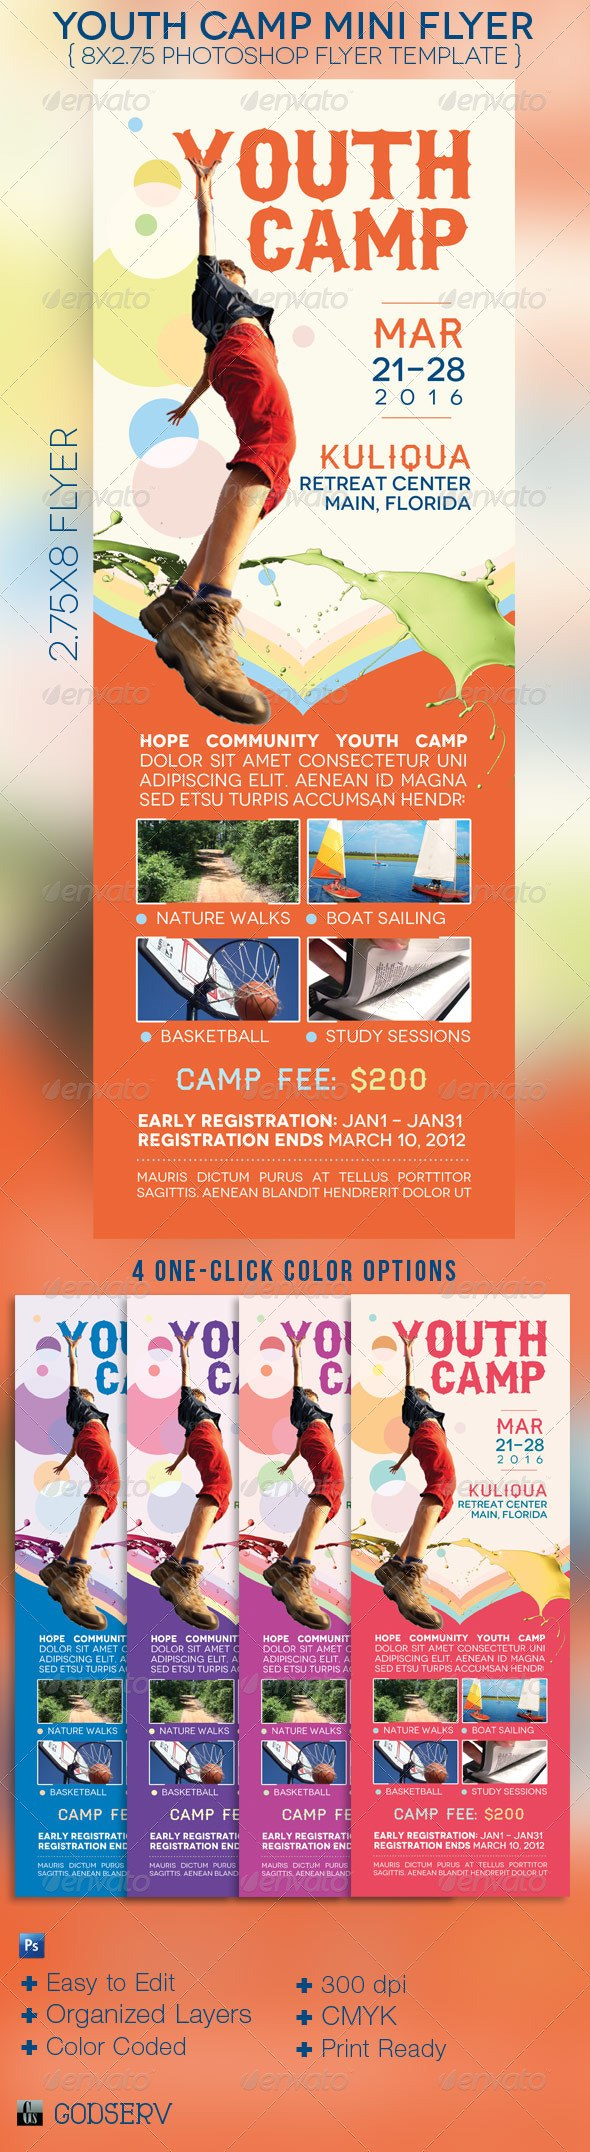 Summer Church Flyer Templates From Graphicriver With Ngo Brochure Templates